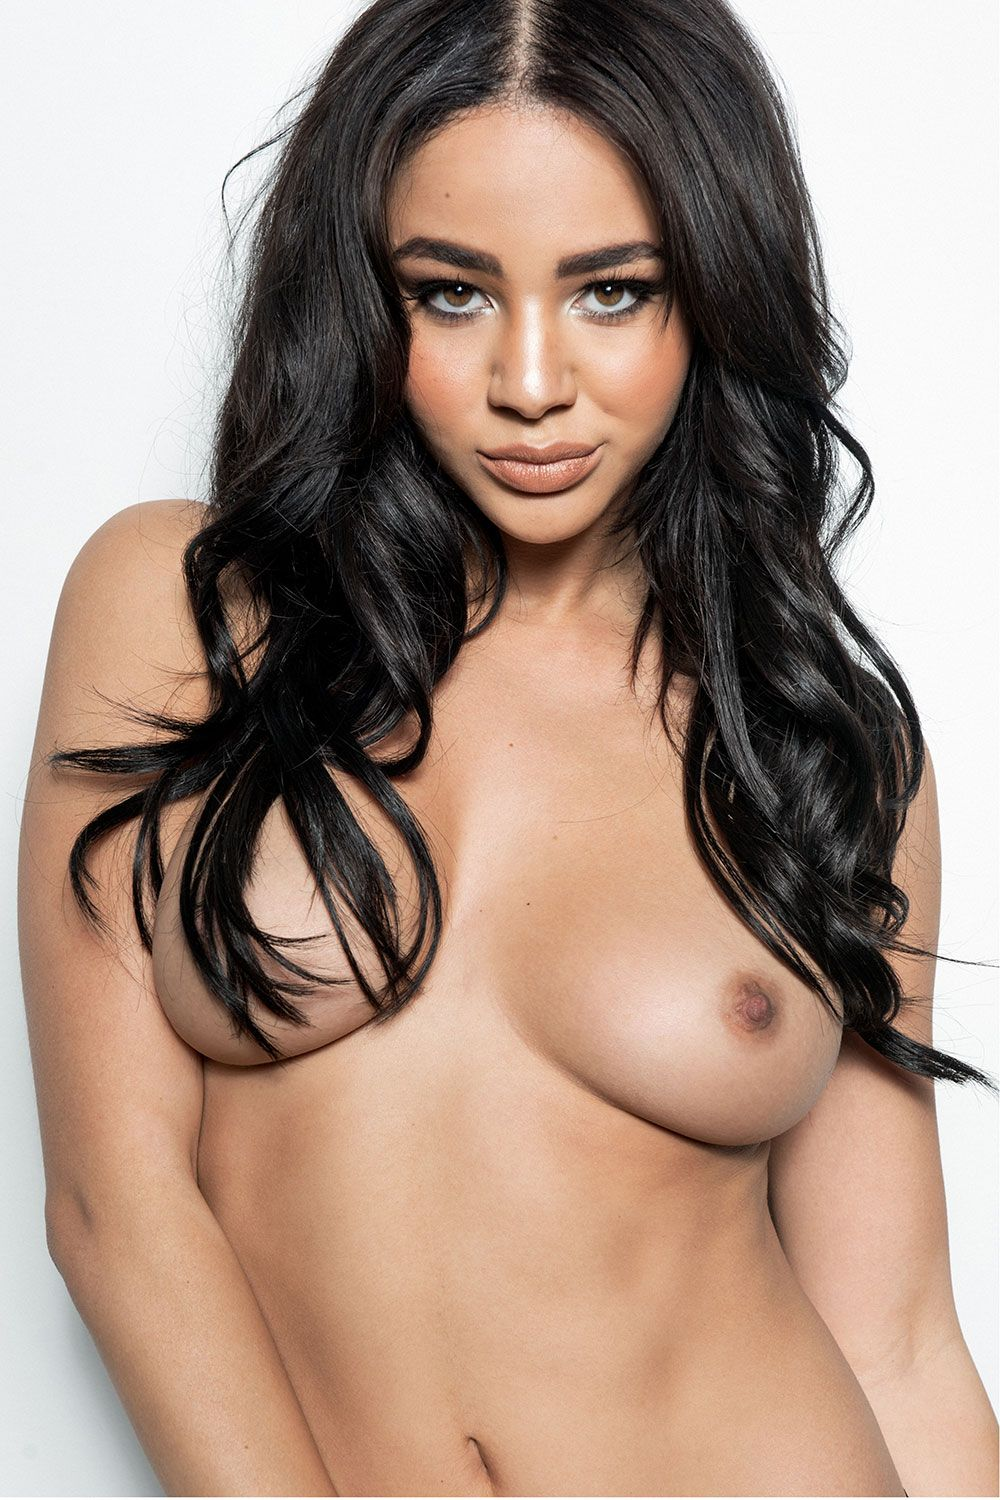 Courtnie-Quinlan-Topless-Photos-4